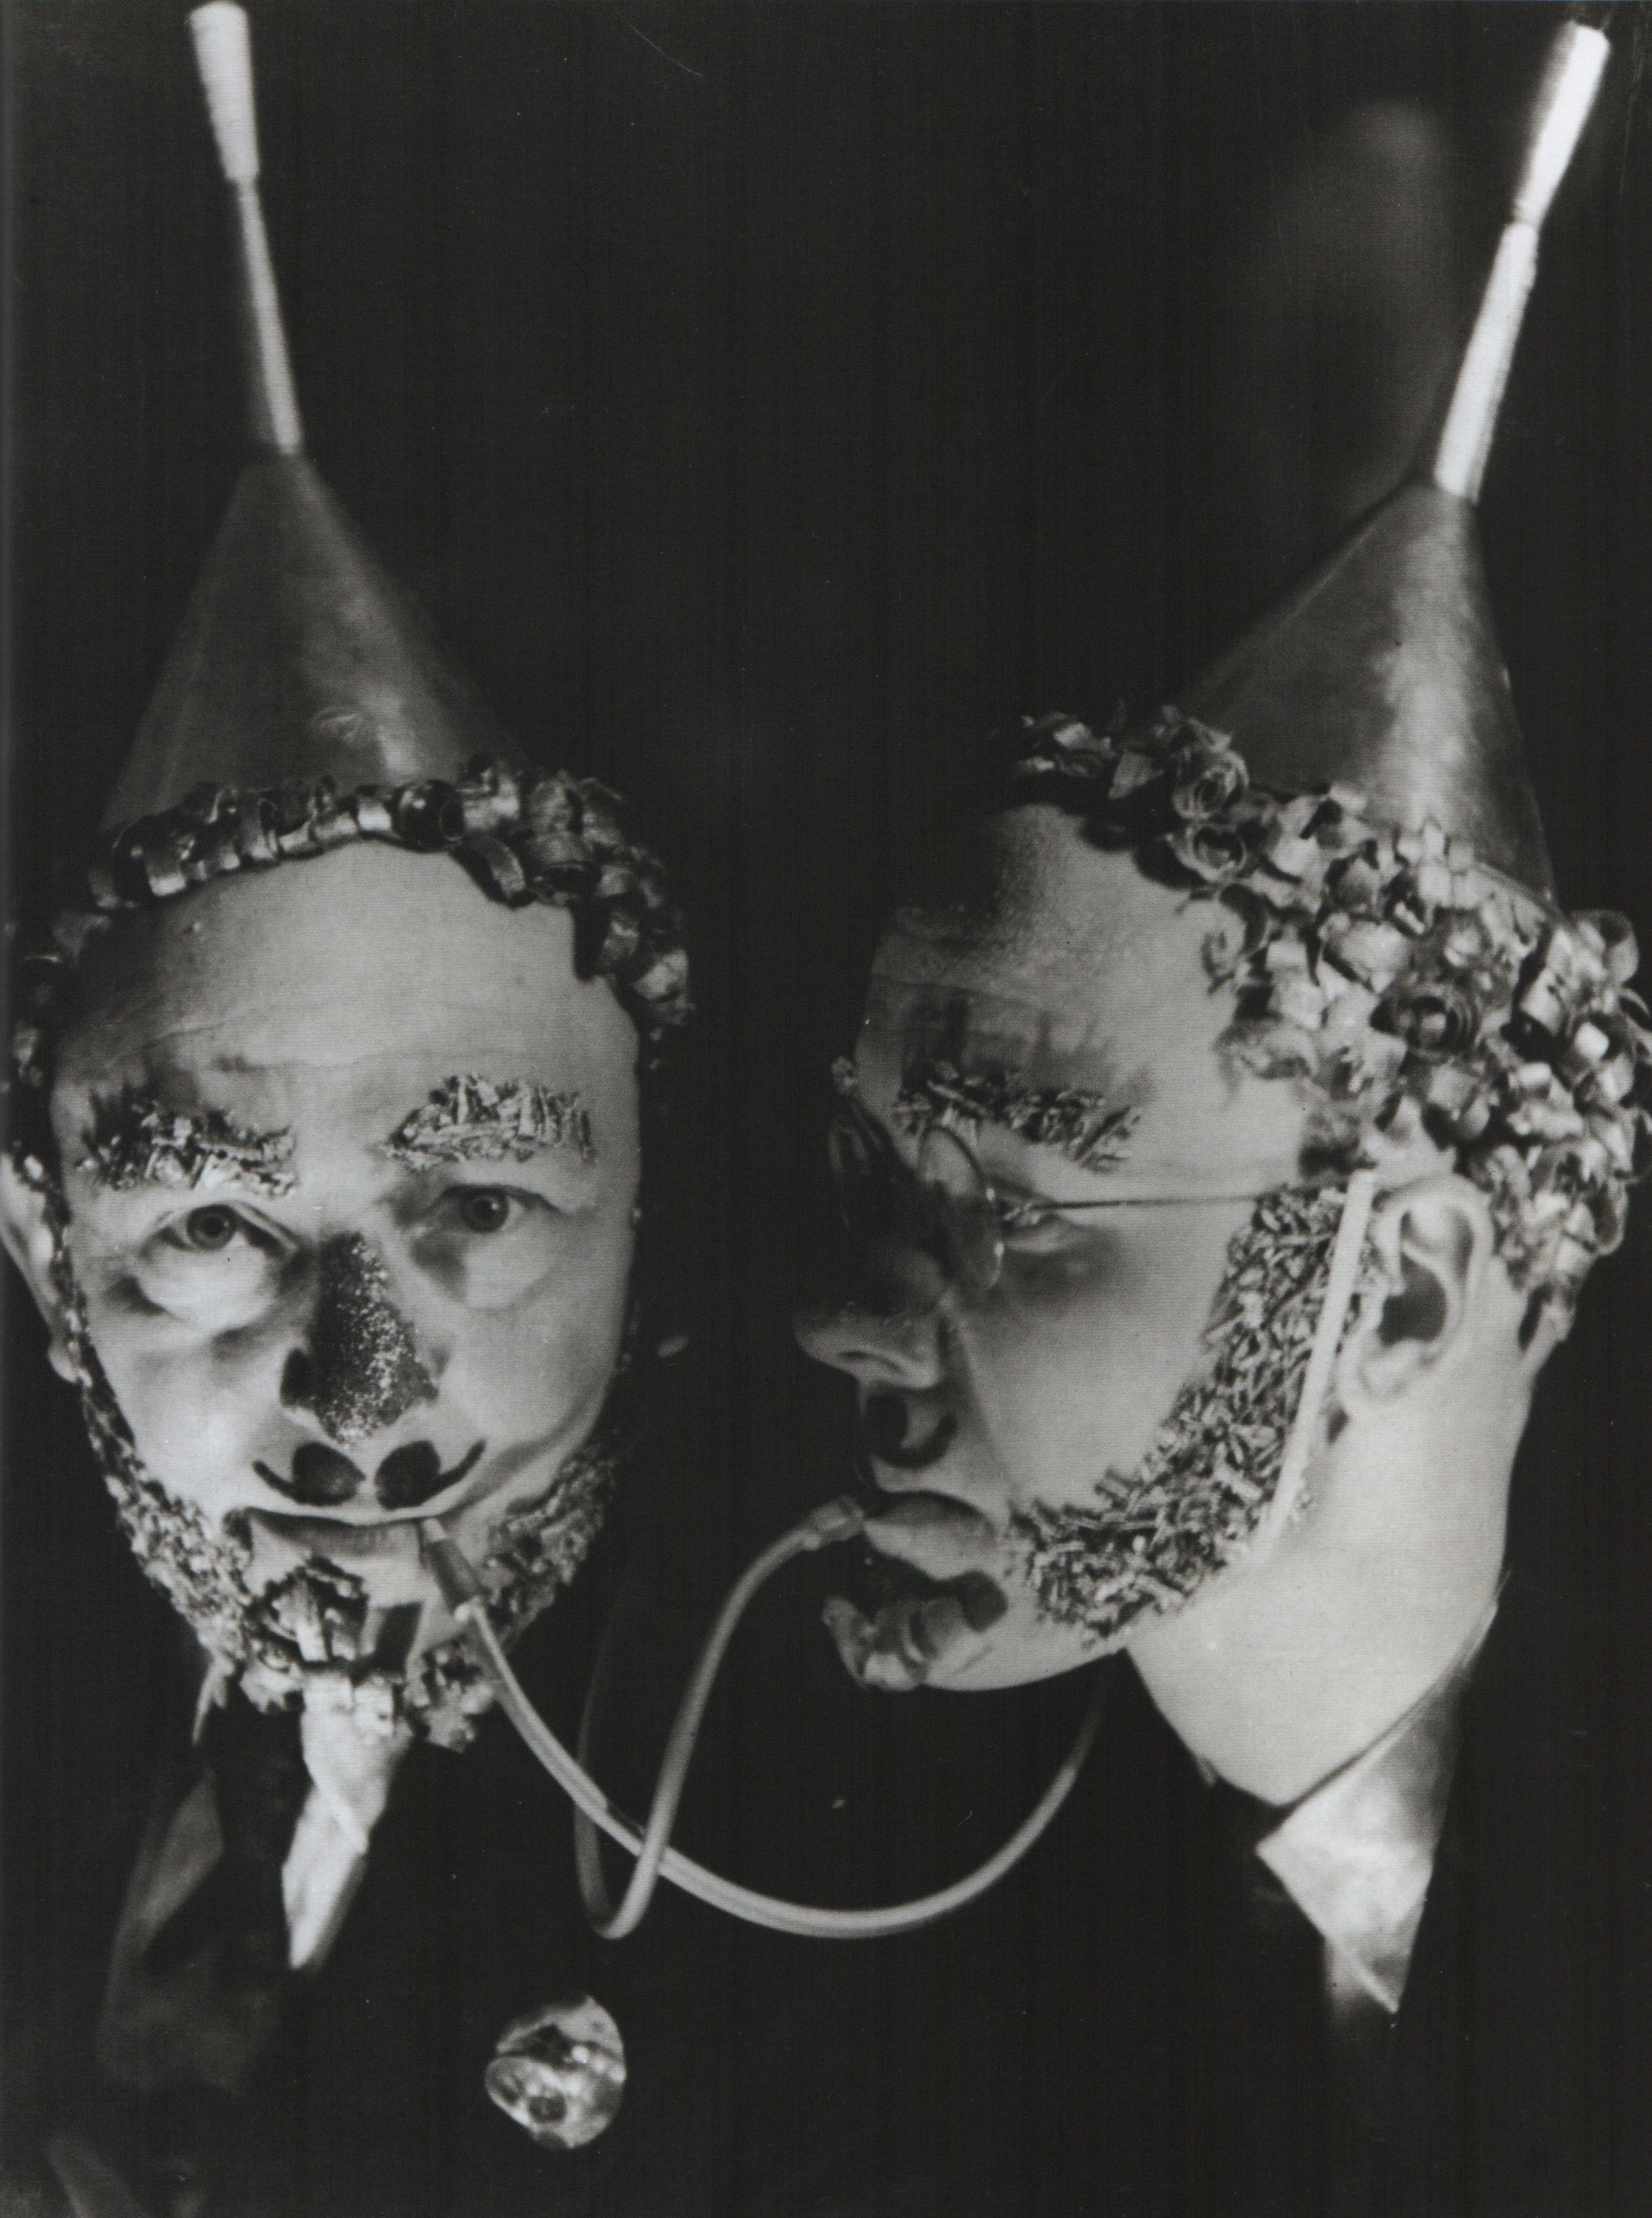 Party goers Casca Sclhemmer and Georg Hartmann at the Bauhaus Metal ...